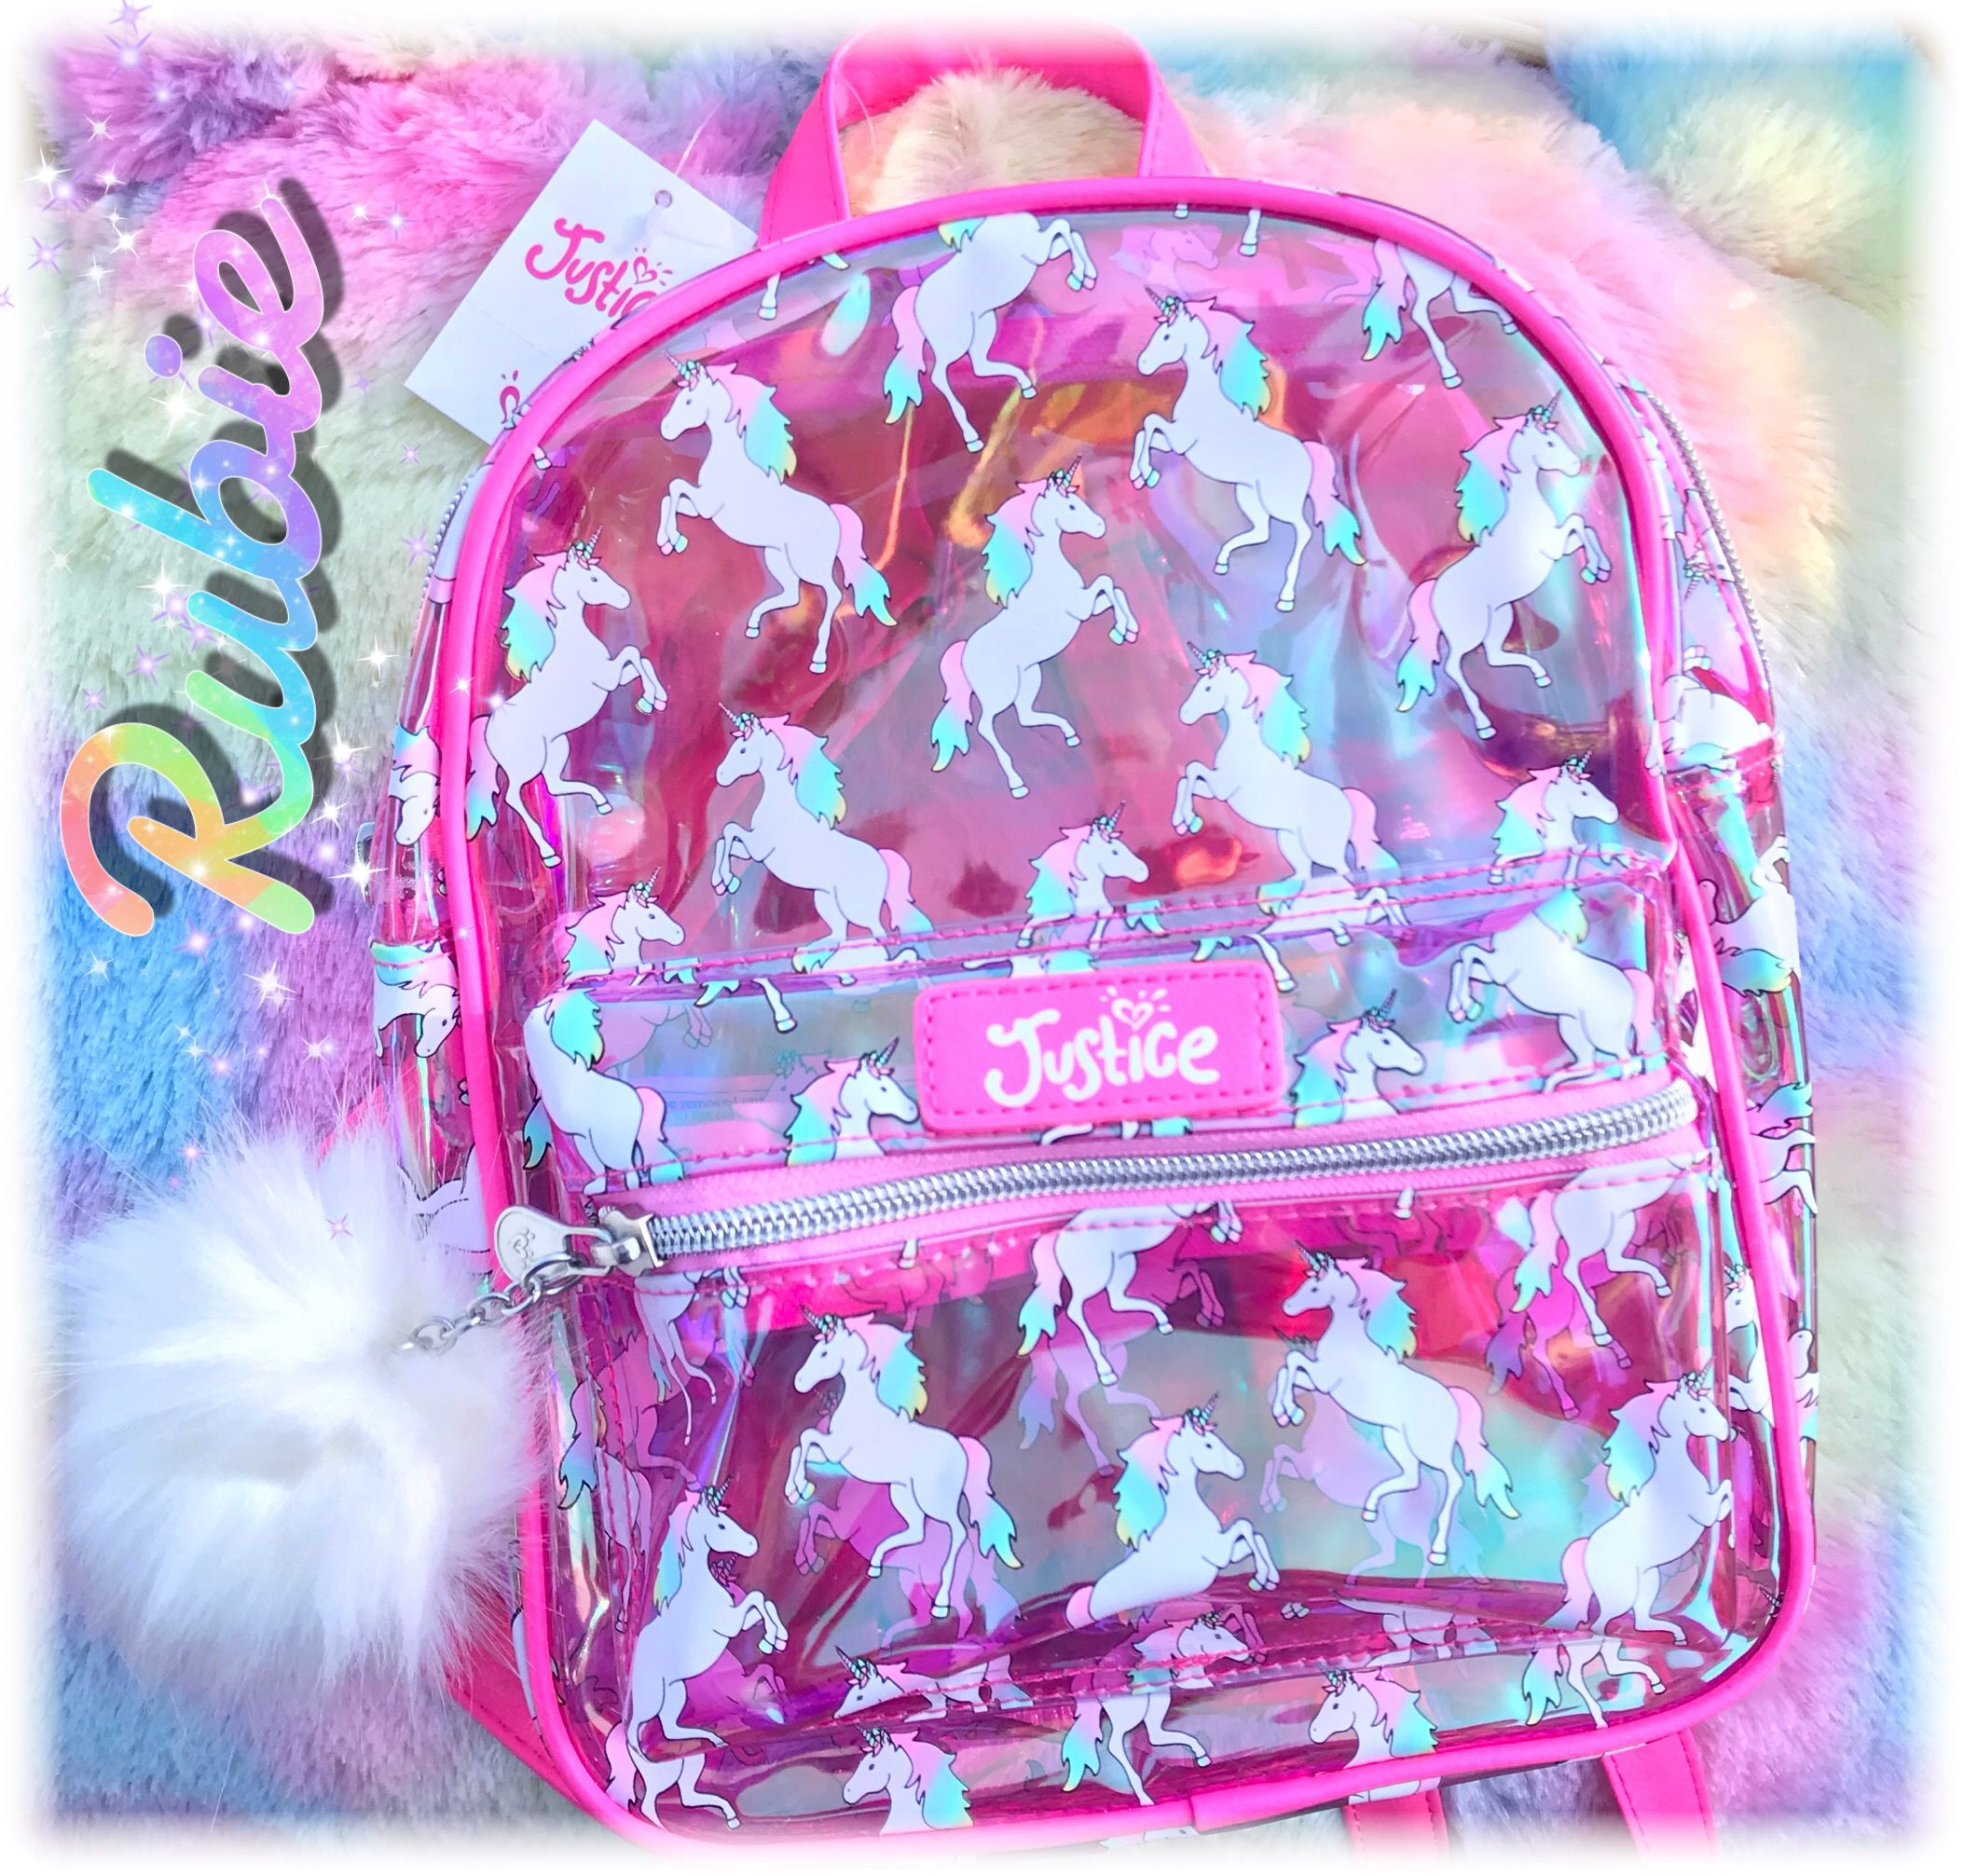 f344fd07b859 My daughter's Mini Unicorn Backpack from her favorite store #Justice ...